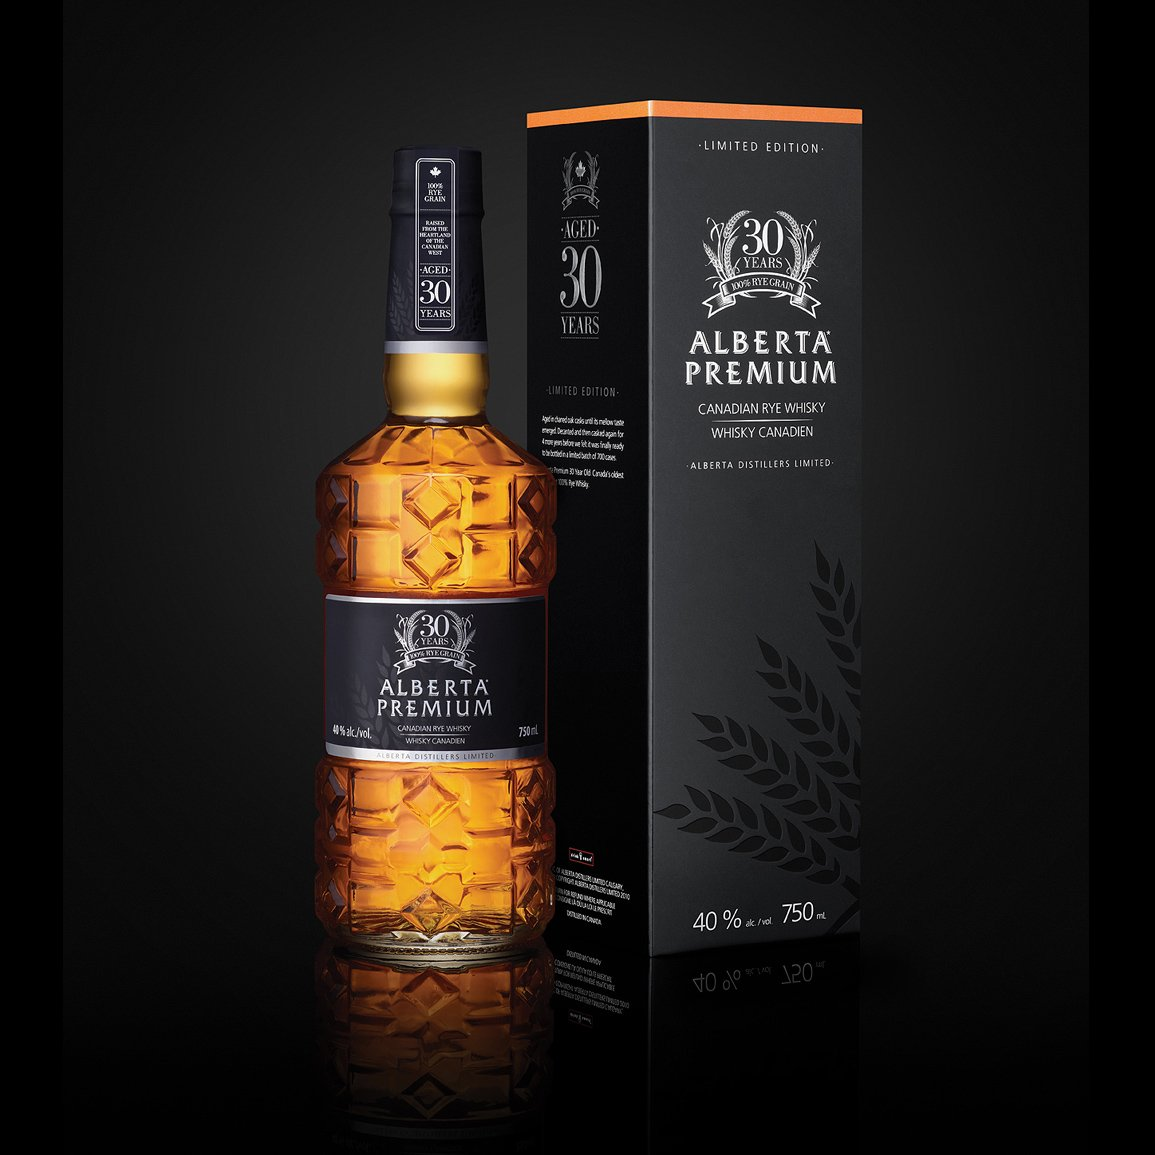 whisky and vodka packaging